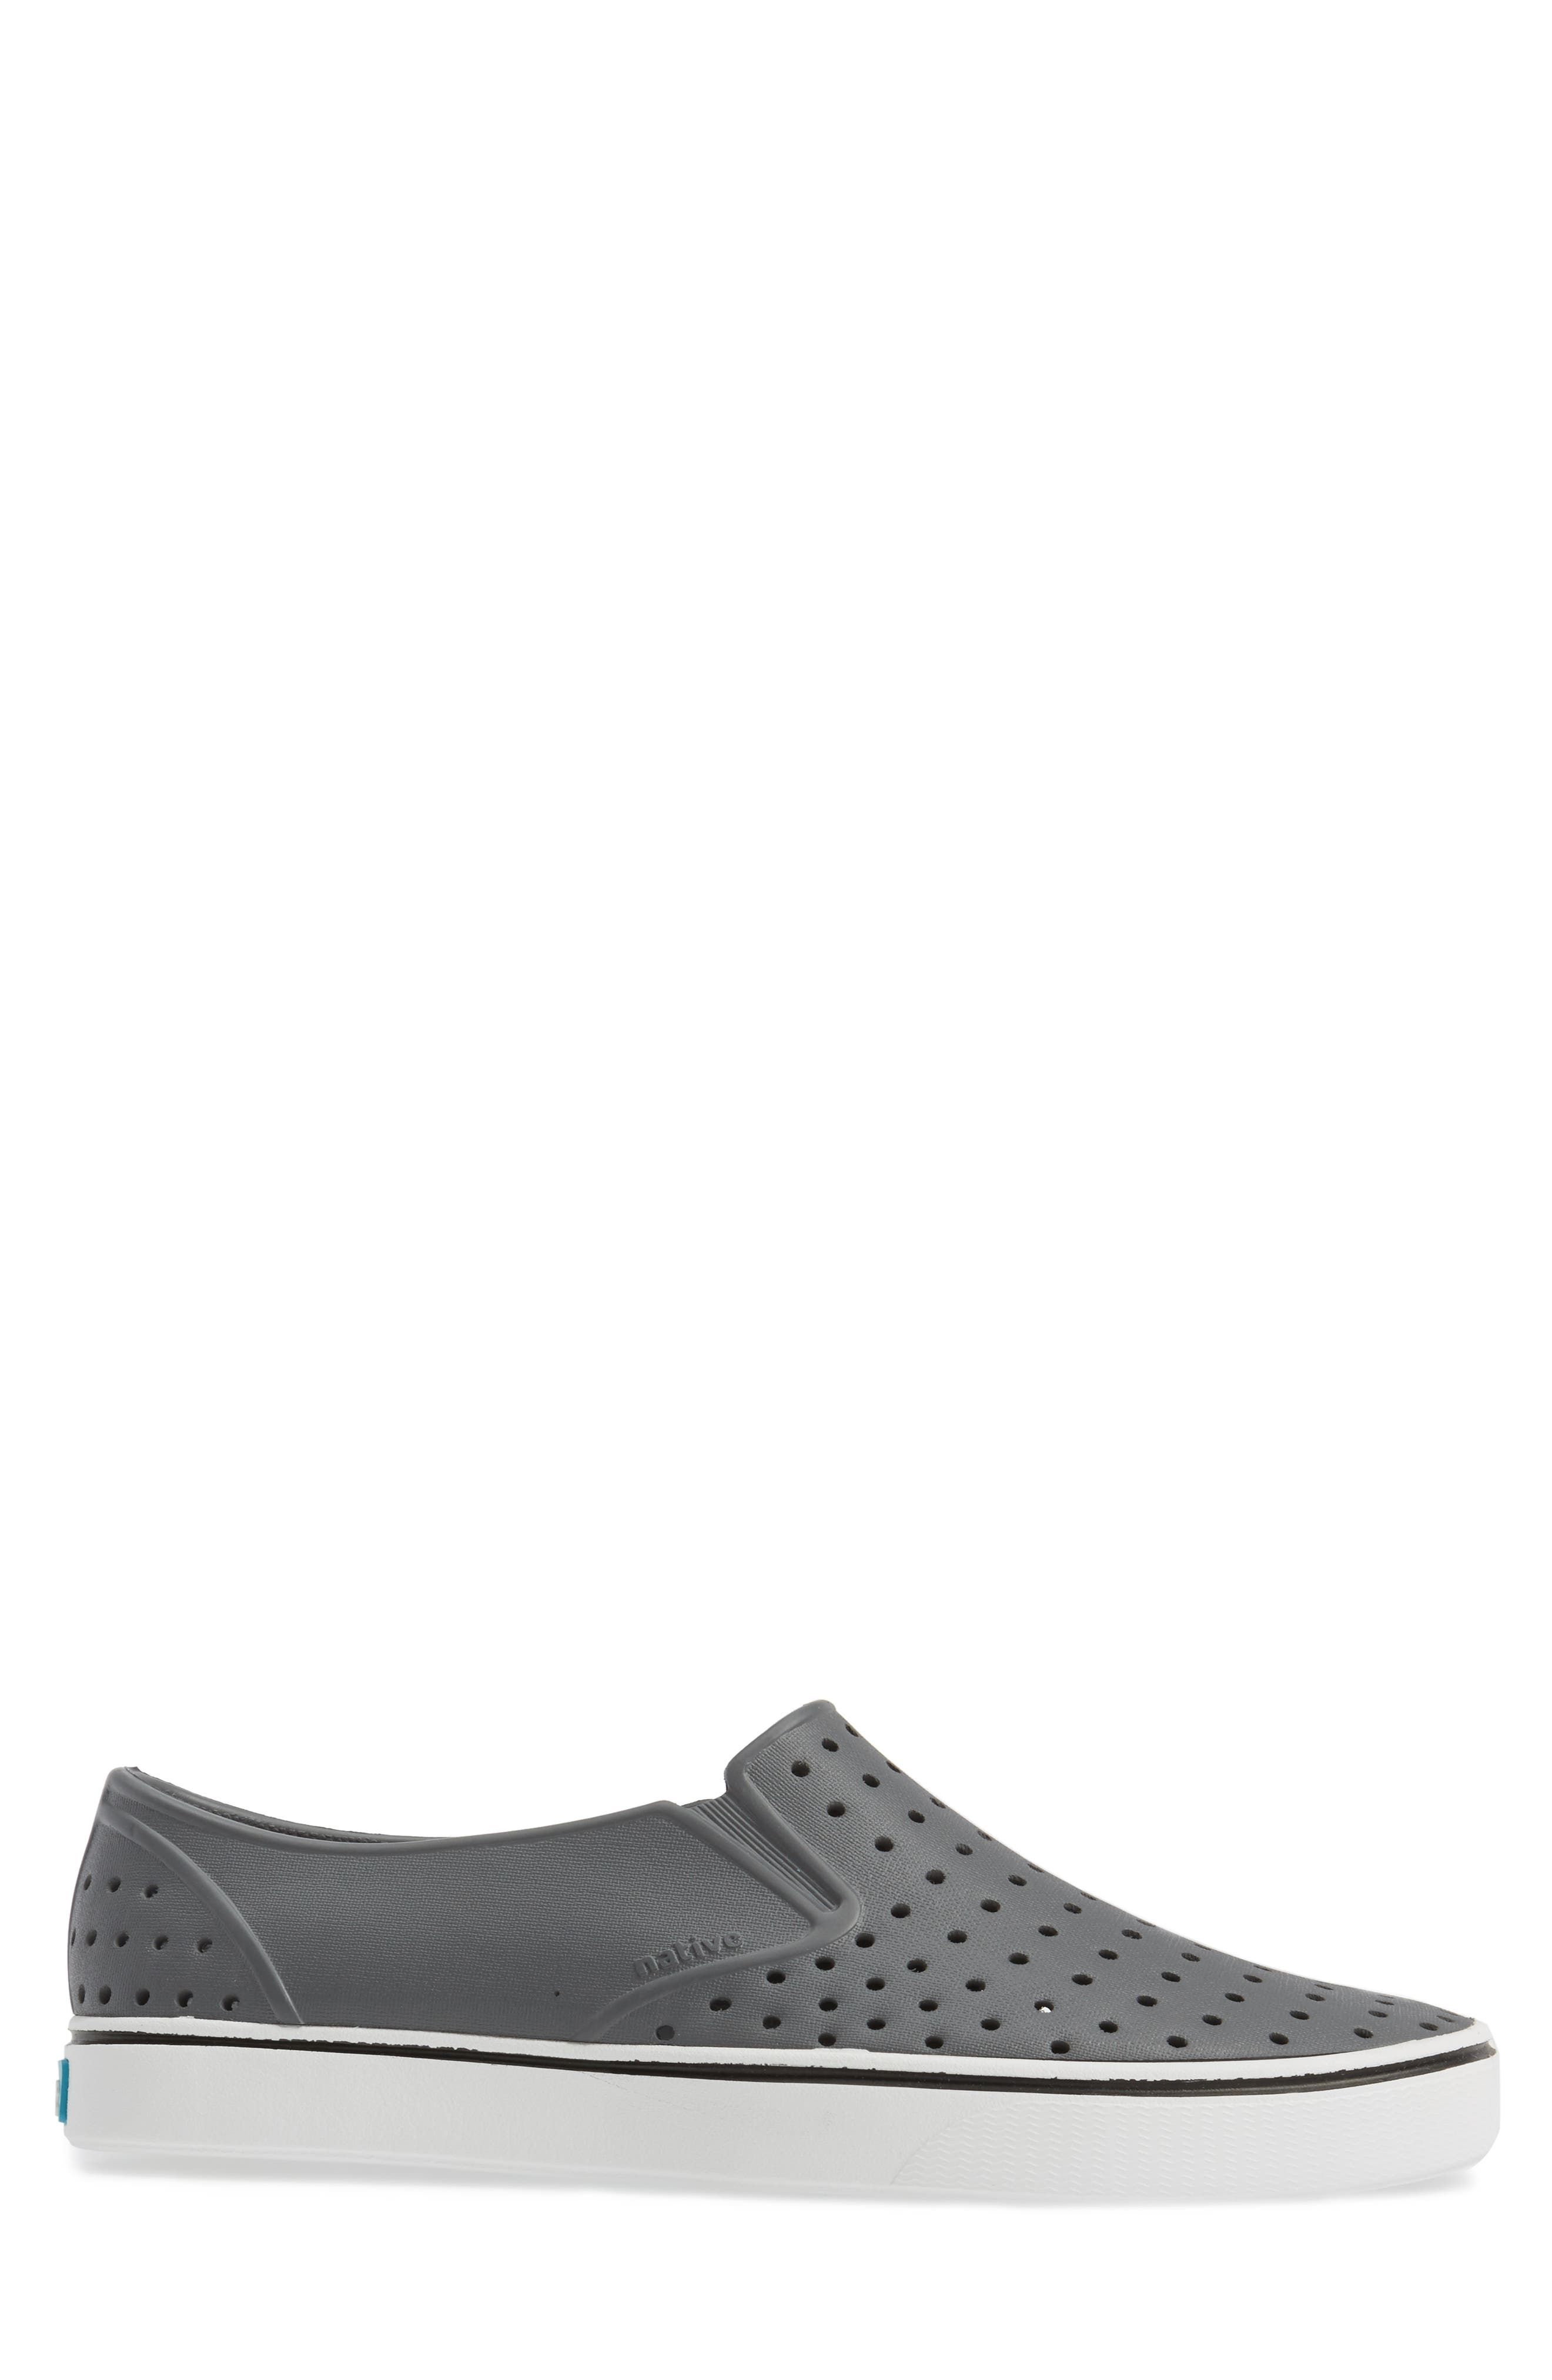 Miles Water Friendly Perforated Slip-On,                             Alternate thumbnail 3, color,                             Grey/ White